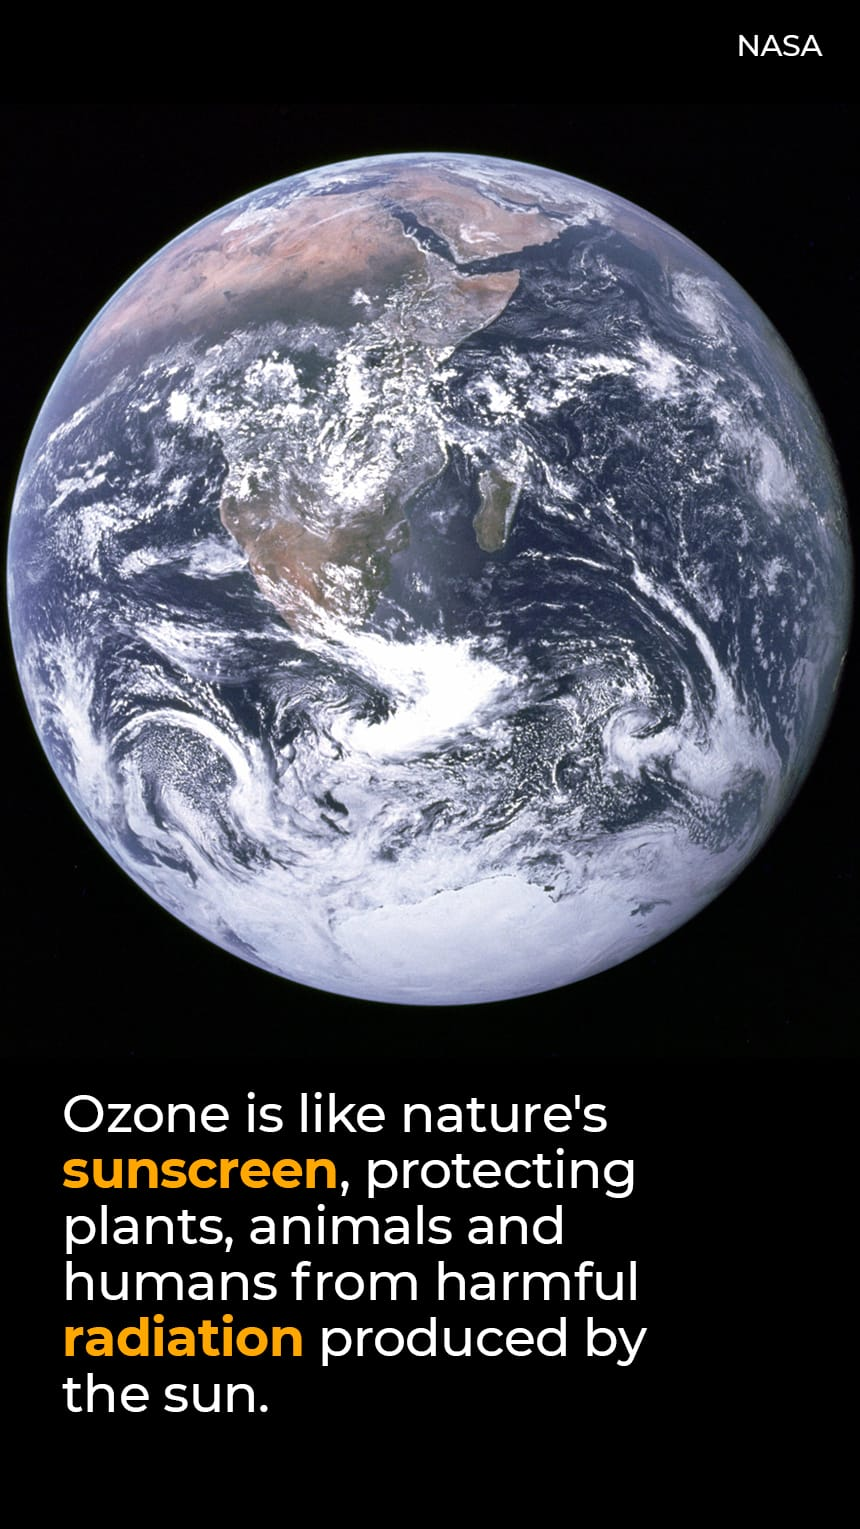 TEXT: Ozone is like nature's sunscreen, protecting plants, animals and humans from harmful radiation produced by the sun.   IMAGE: The Earth seen from space.